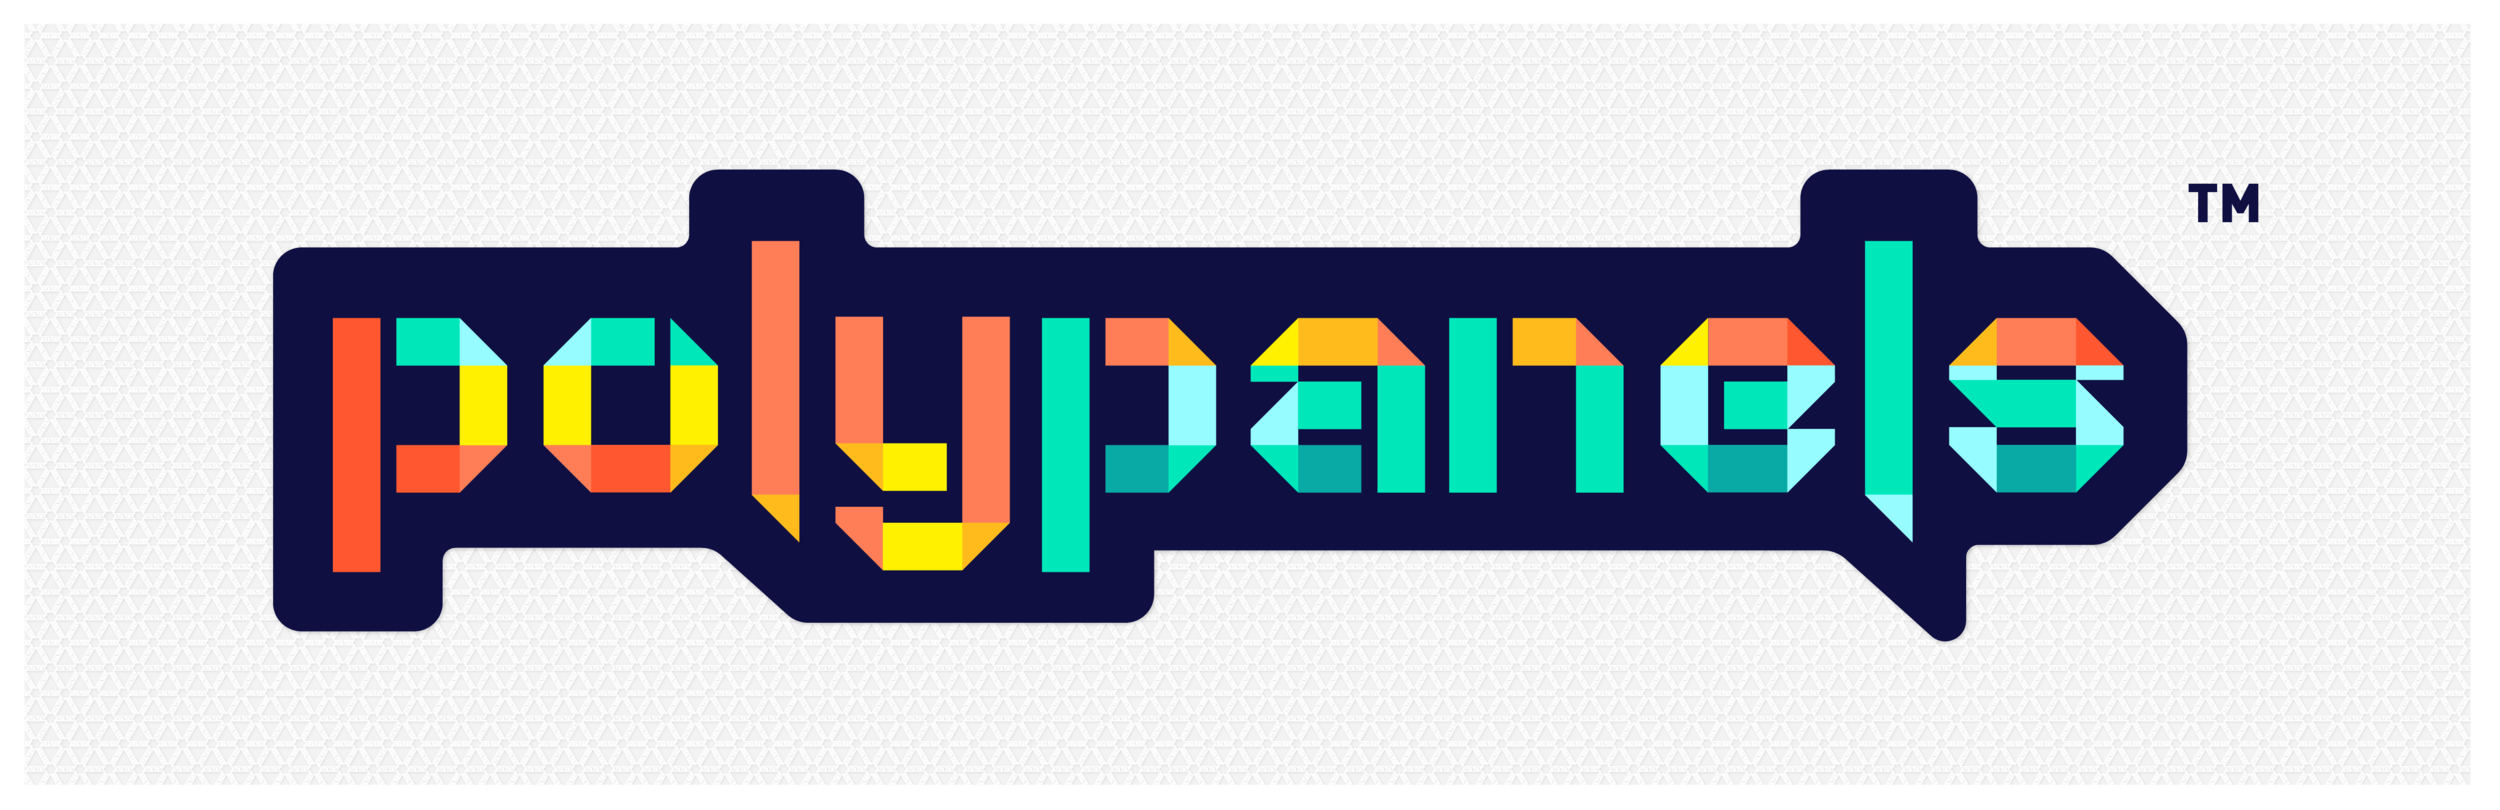 polypanels_logo_onBG